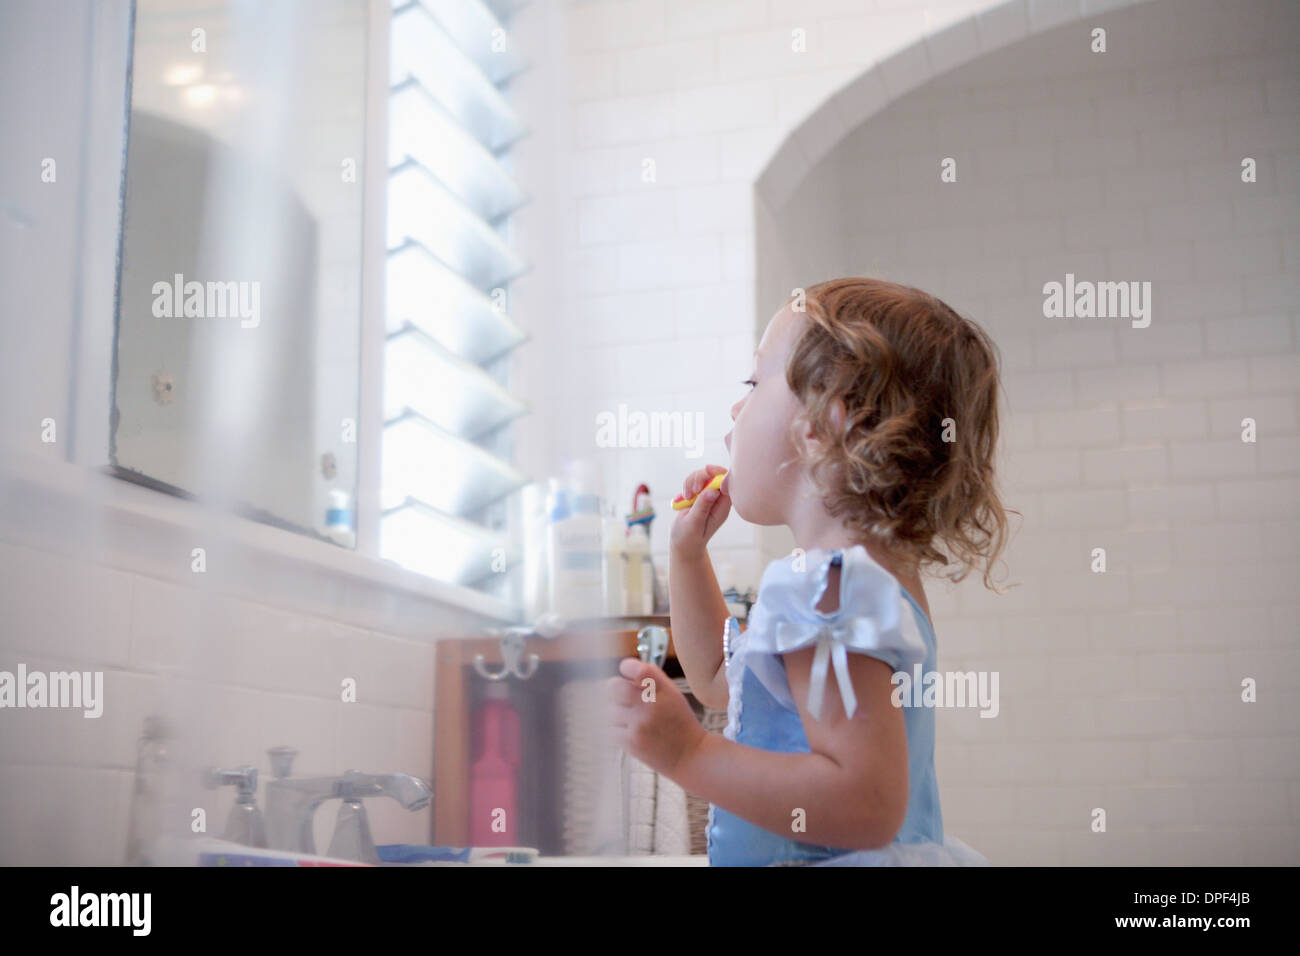 Female toddler cleaning teeth - Stock Image